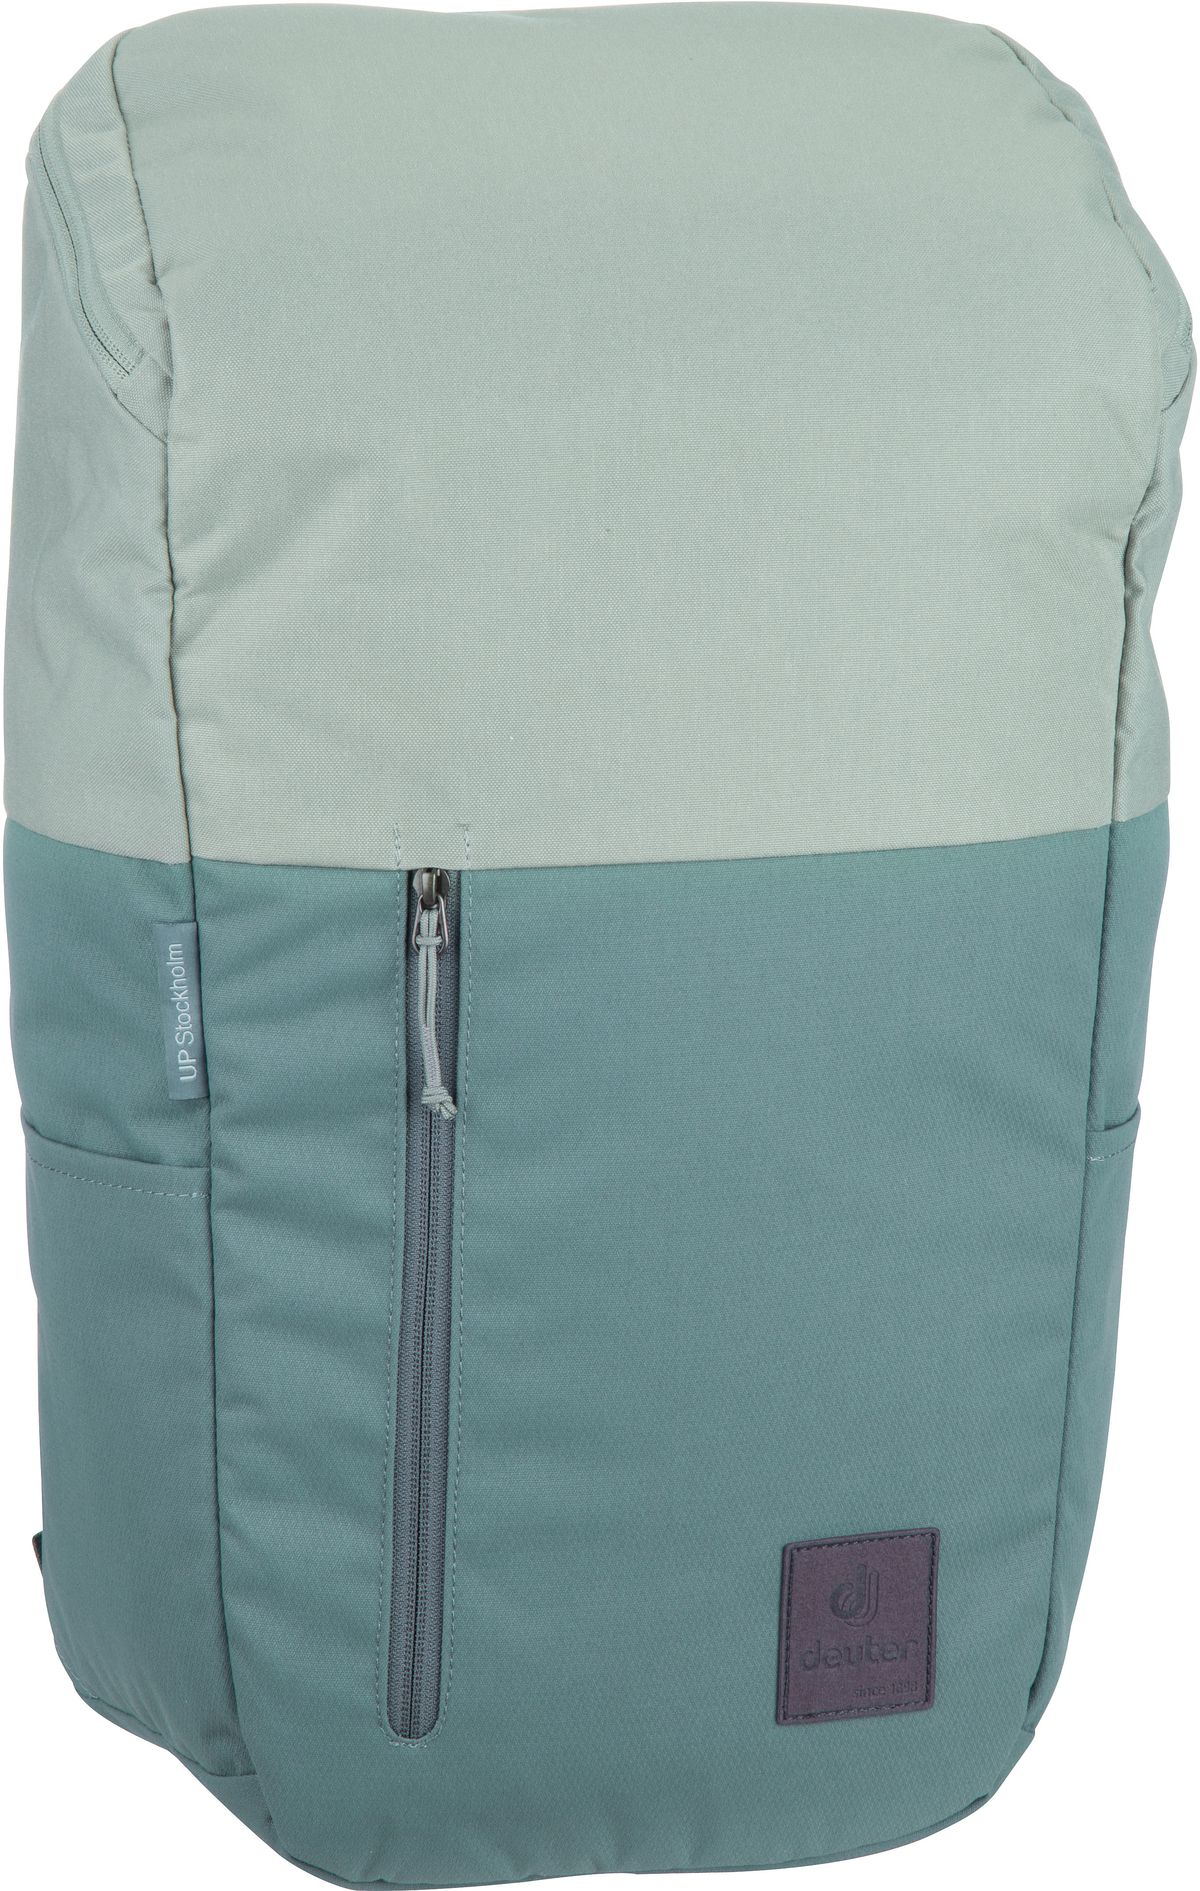 Laptoprucksack Up Stockholm Teal/Sage (22 Liter)